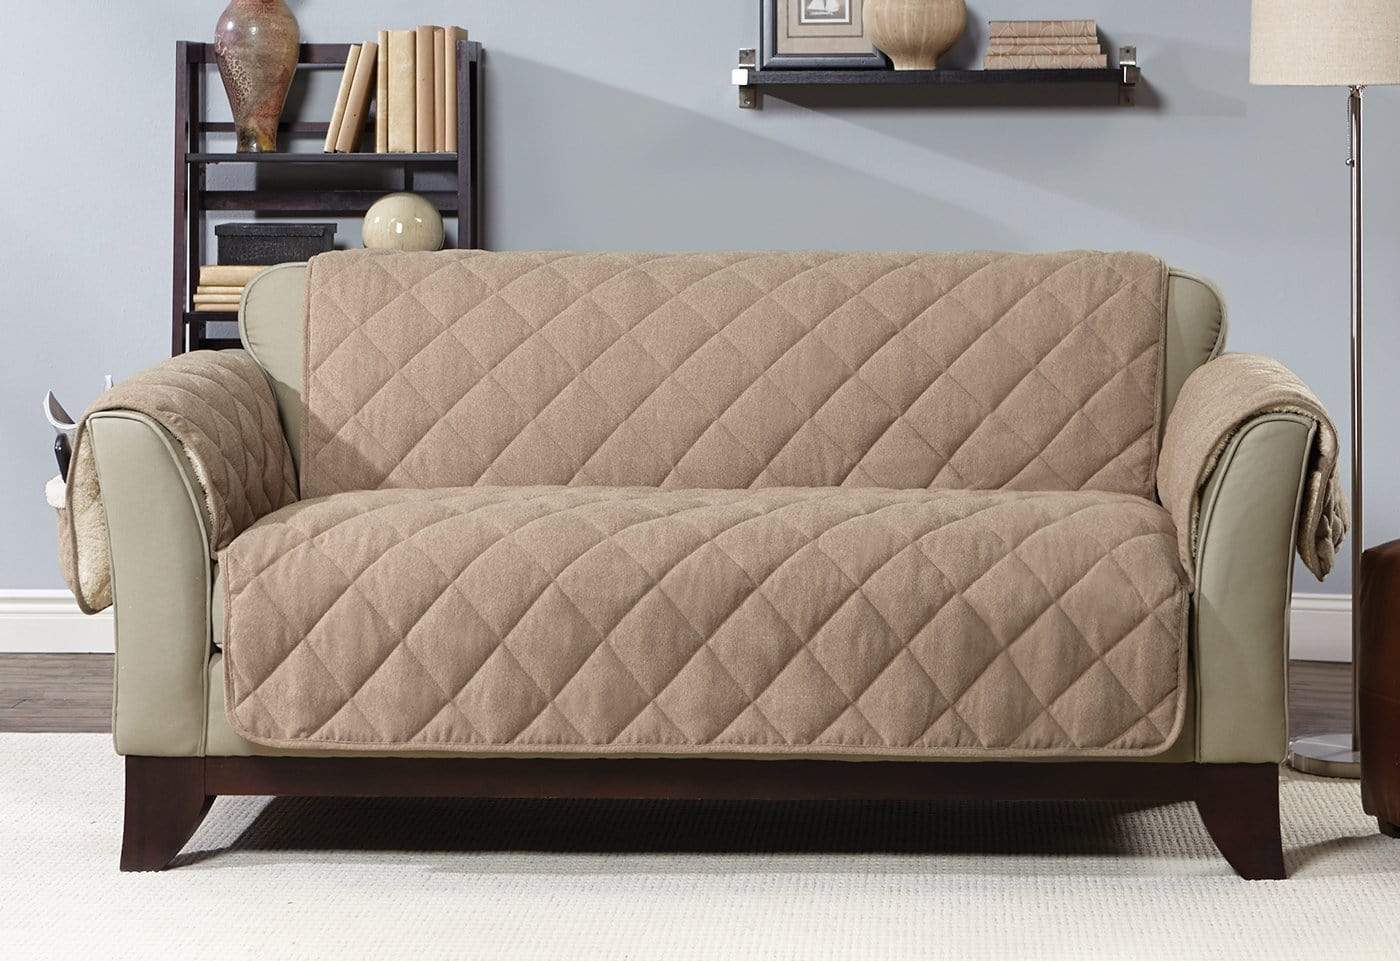 Flannel & Sherpa Loveseat Furniture Cover 100% Polyester Pet Furniture Cover Machine Washable - Loveseat / Walnut